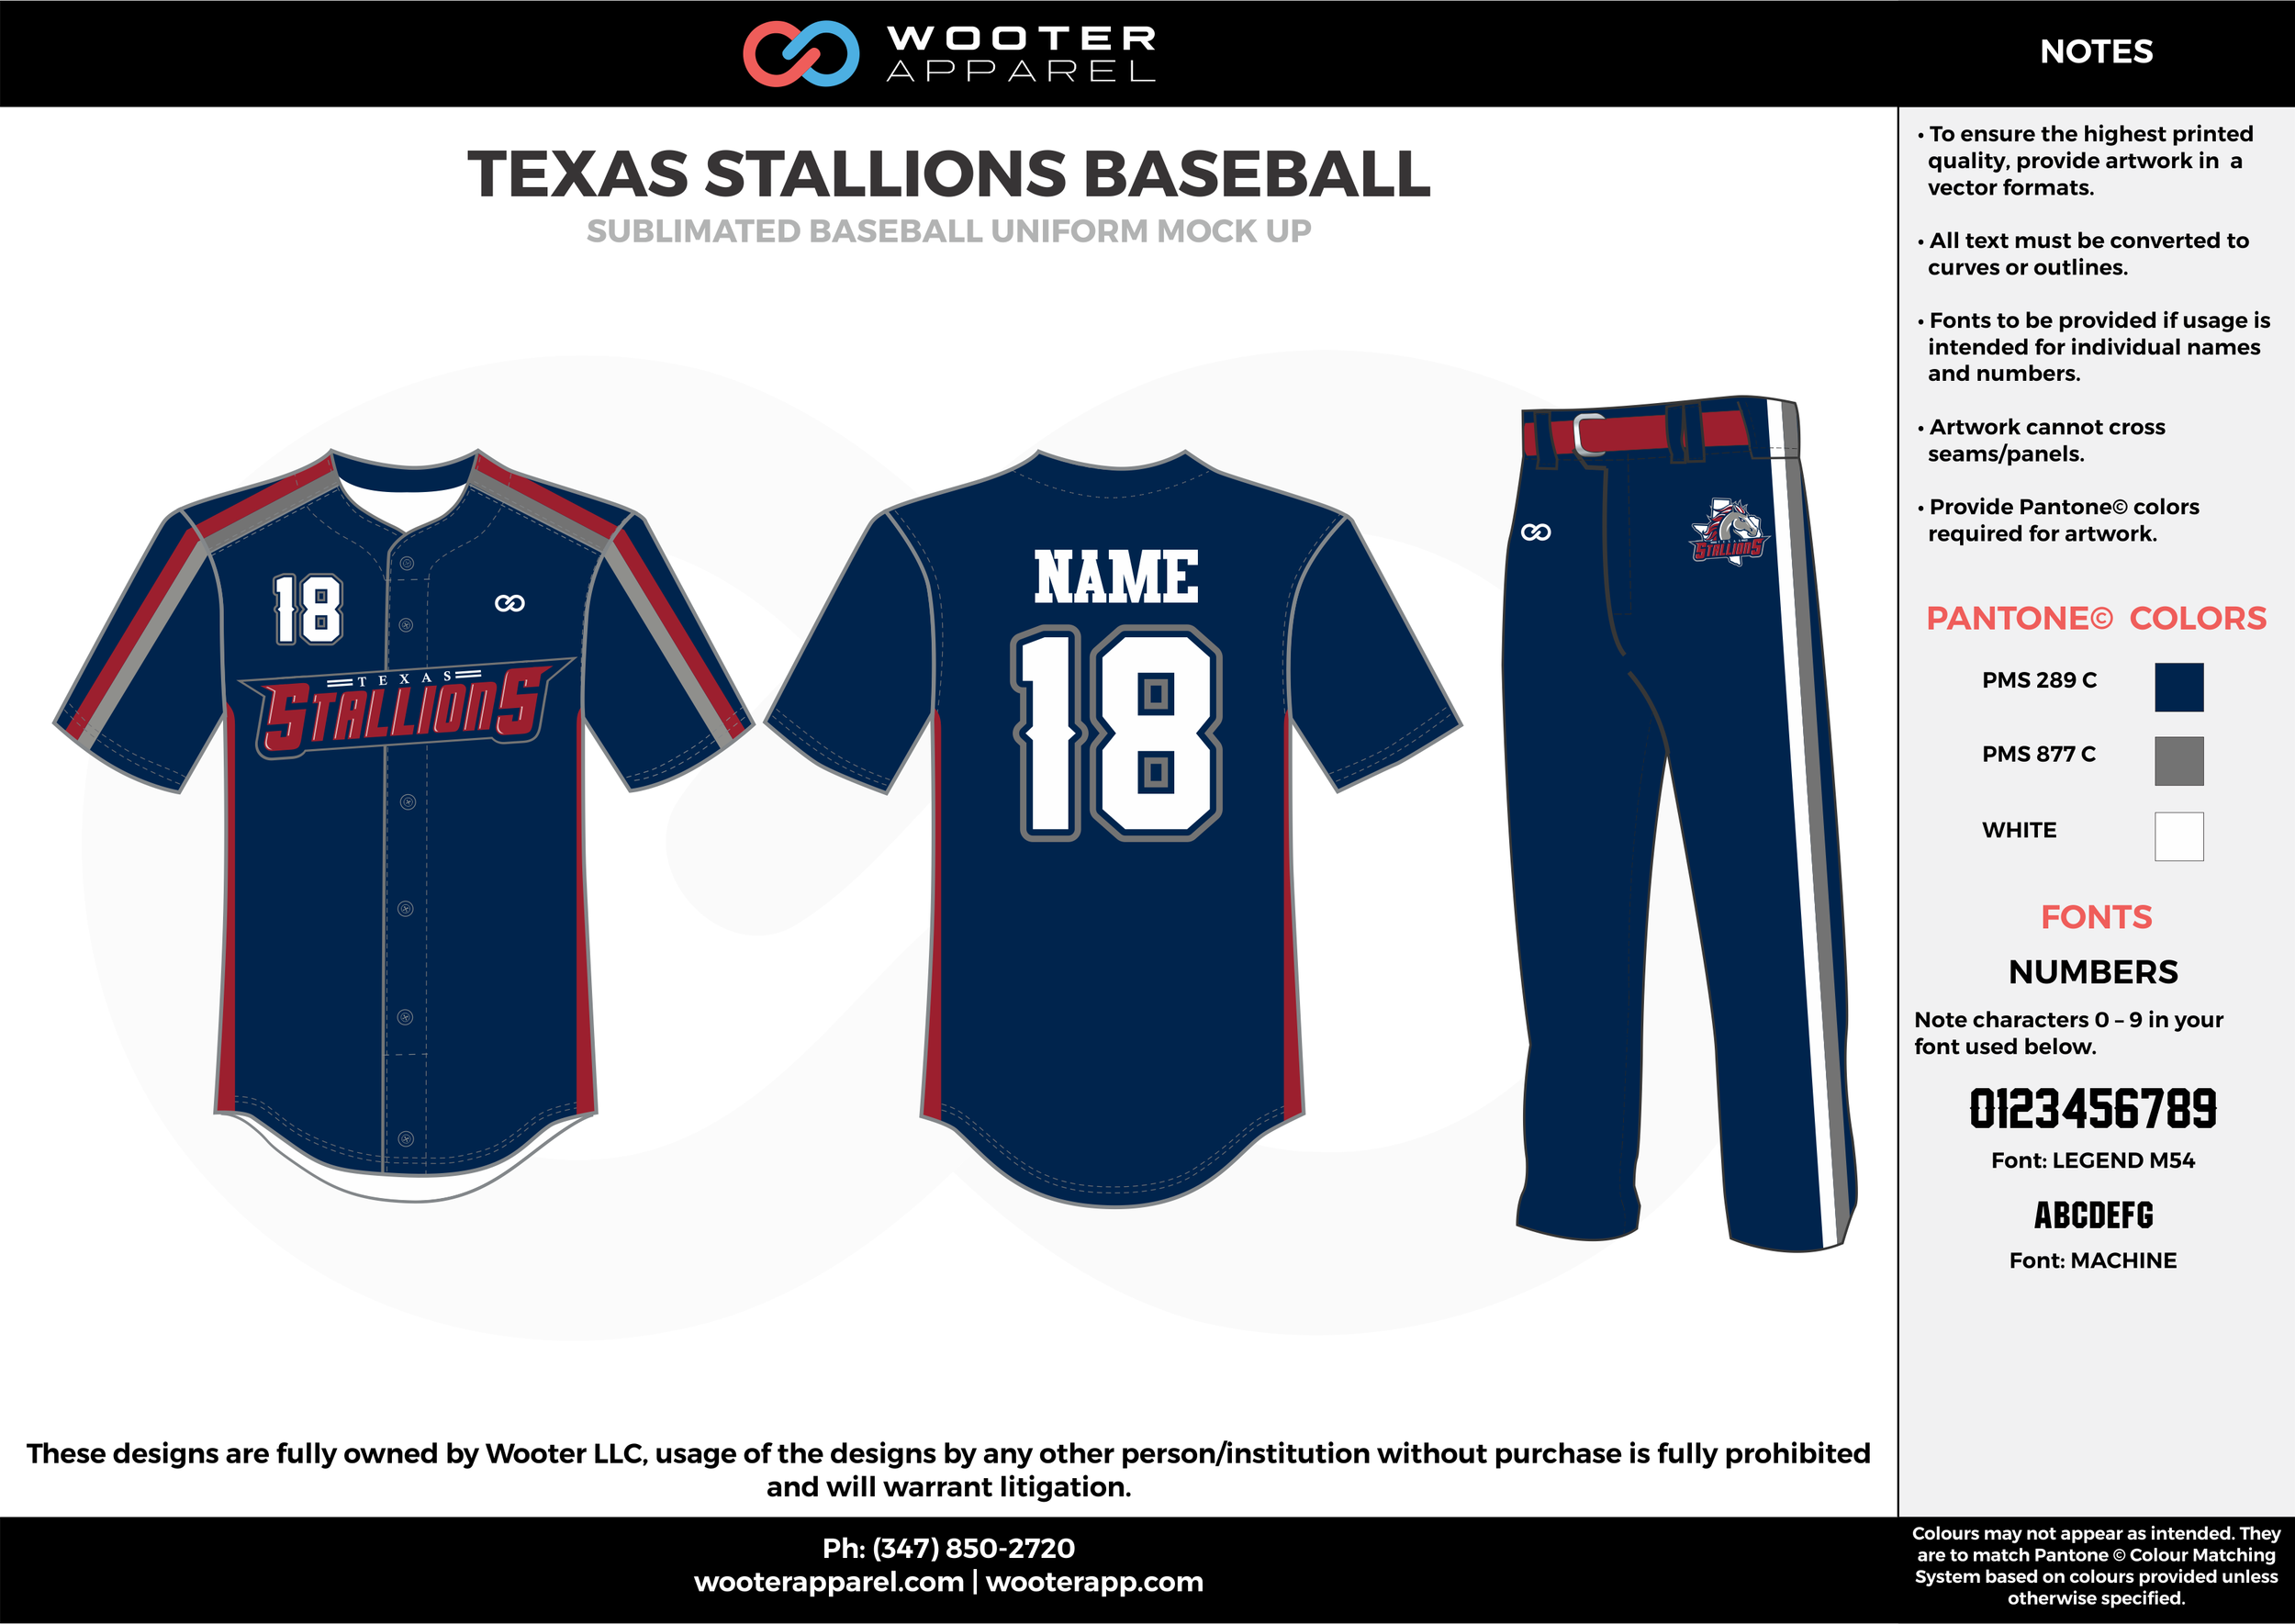 TEXAS STALLIONS BASEBALL dark blue gray red white baseball uniforms jerseys pants